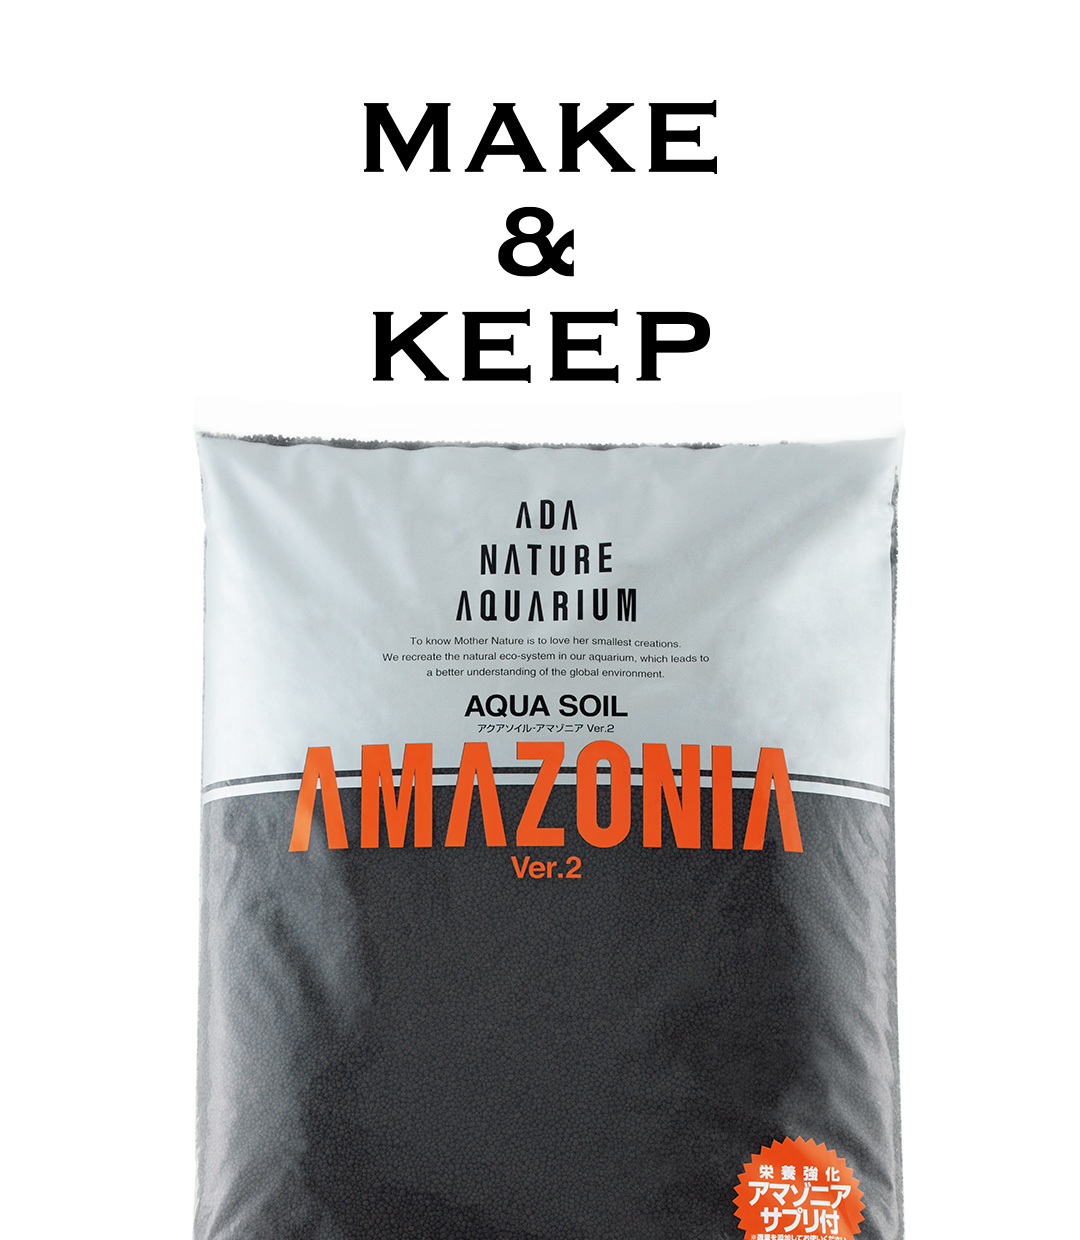 MAKE & KEEP 'AQUA SOIL – AMAZONIA Ver.2'